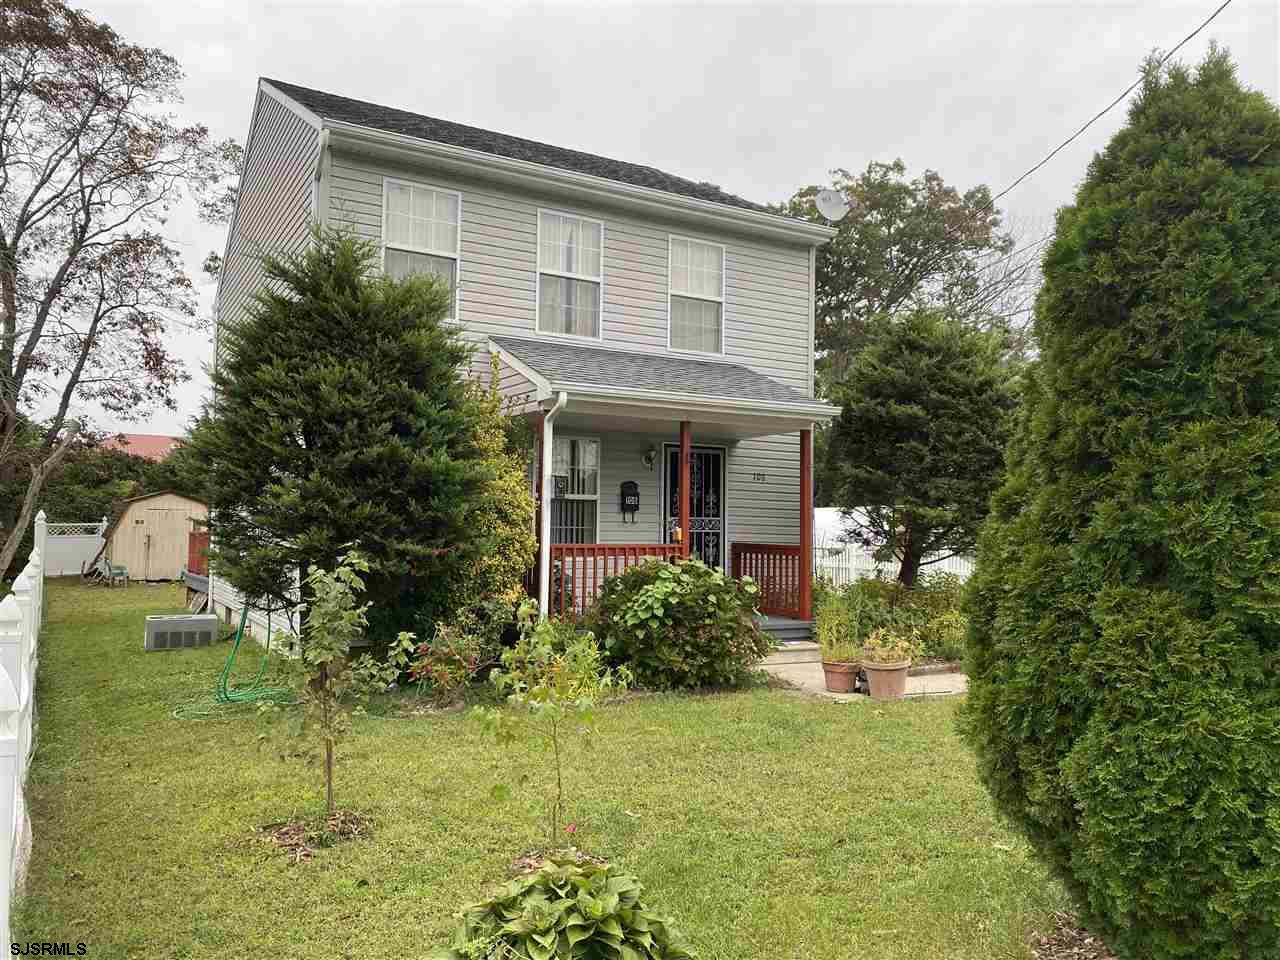 You don't want to miss this house! excellent condition, well maintained, and ready to move in! Make